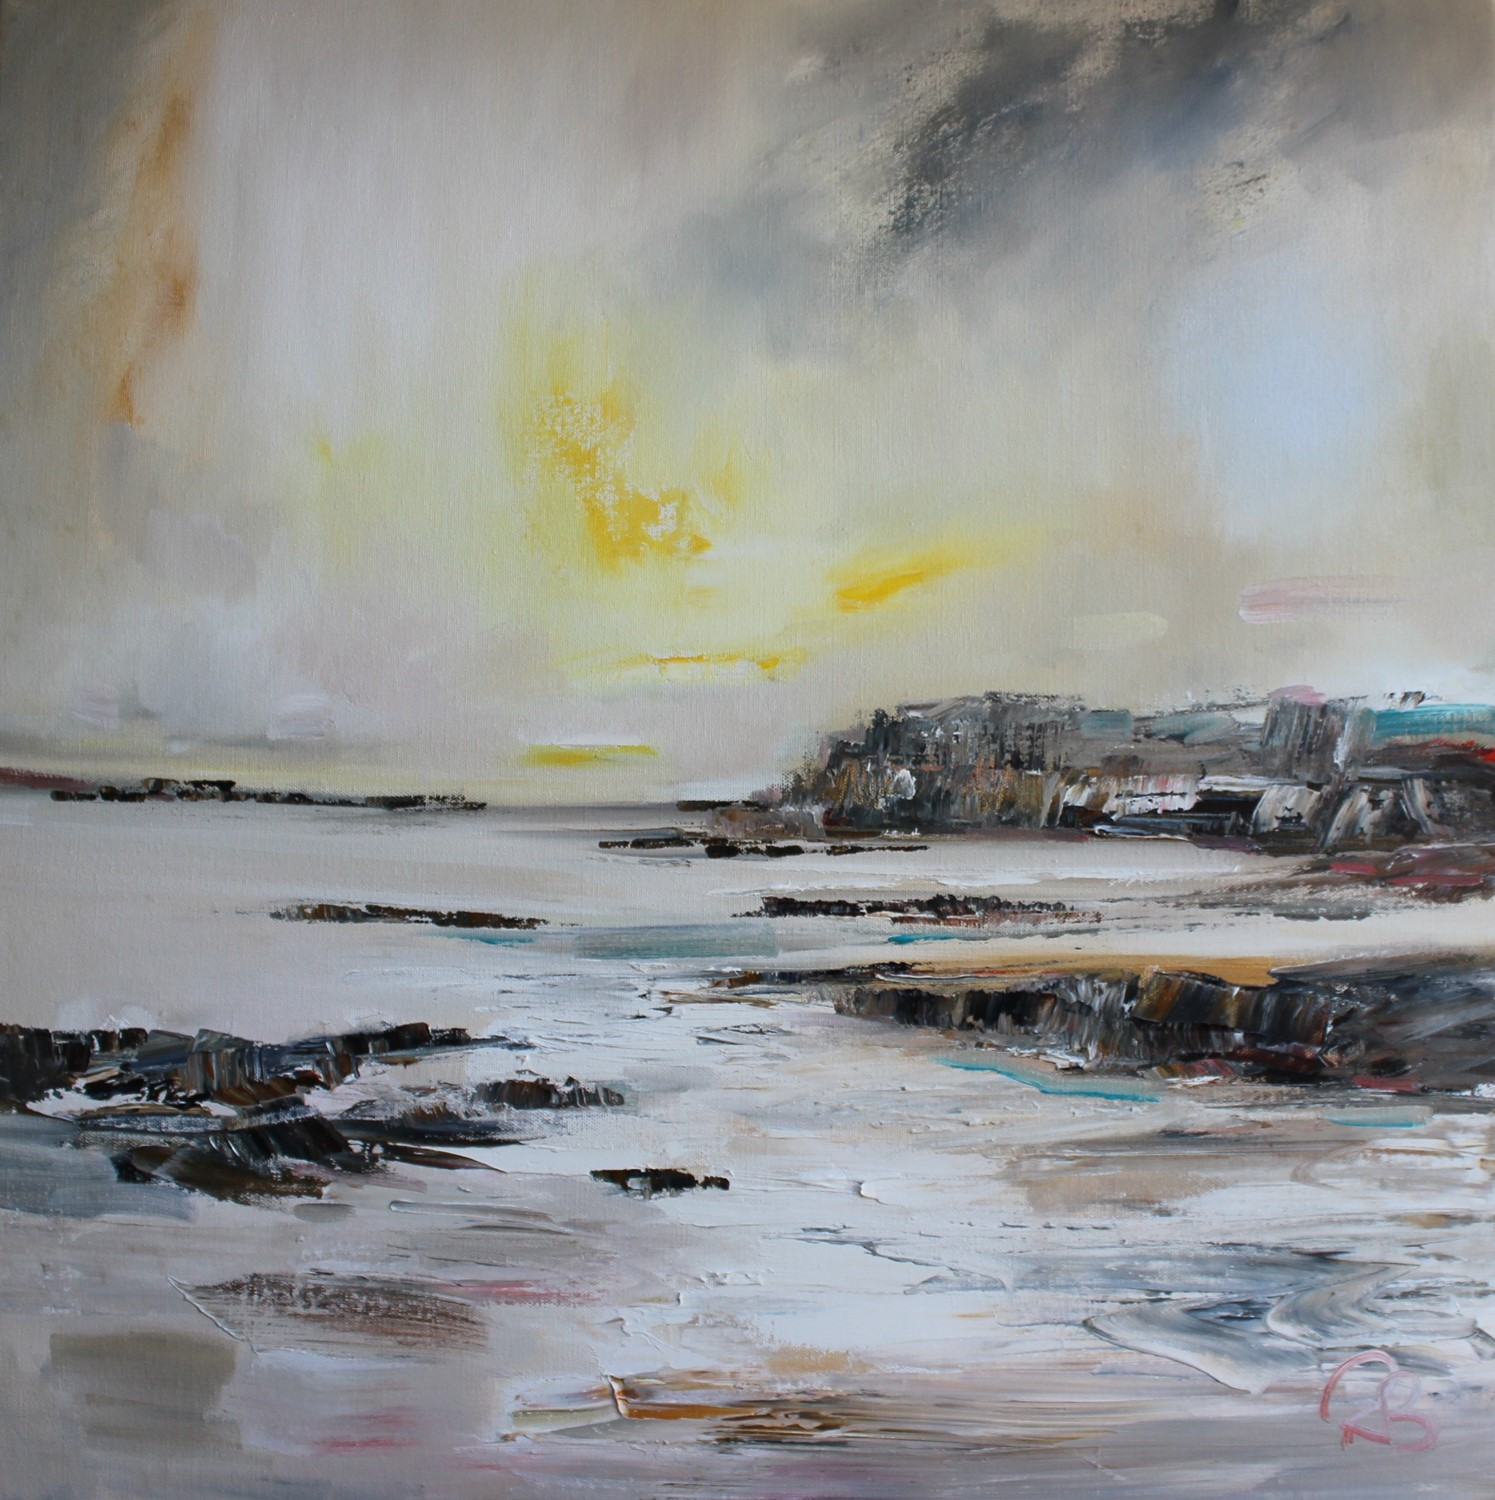 'A Tidal River on the West Coast' by artist Rosanne Barr